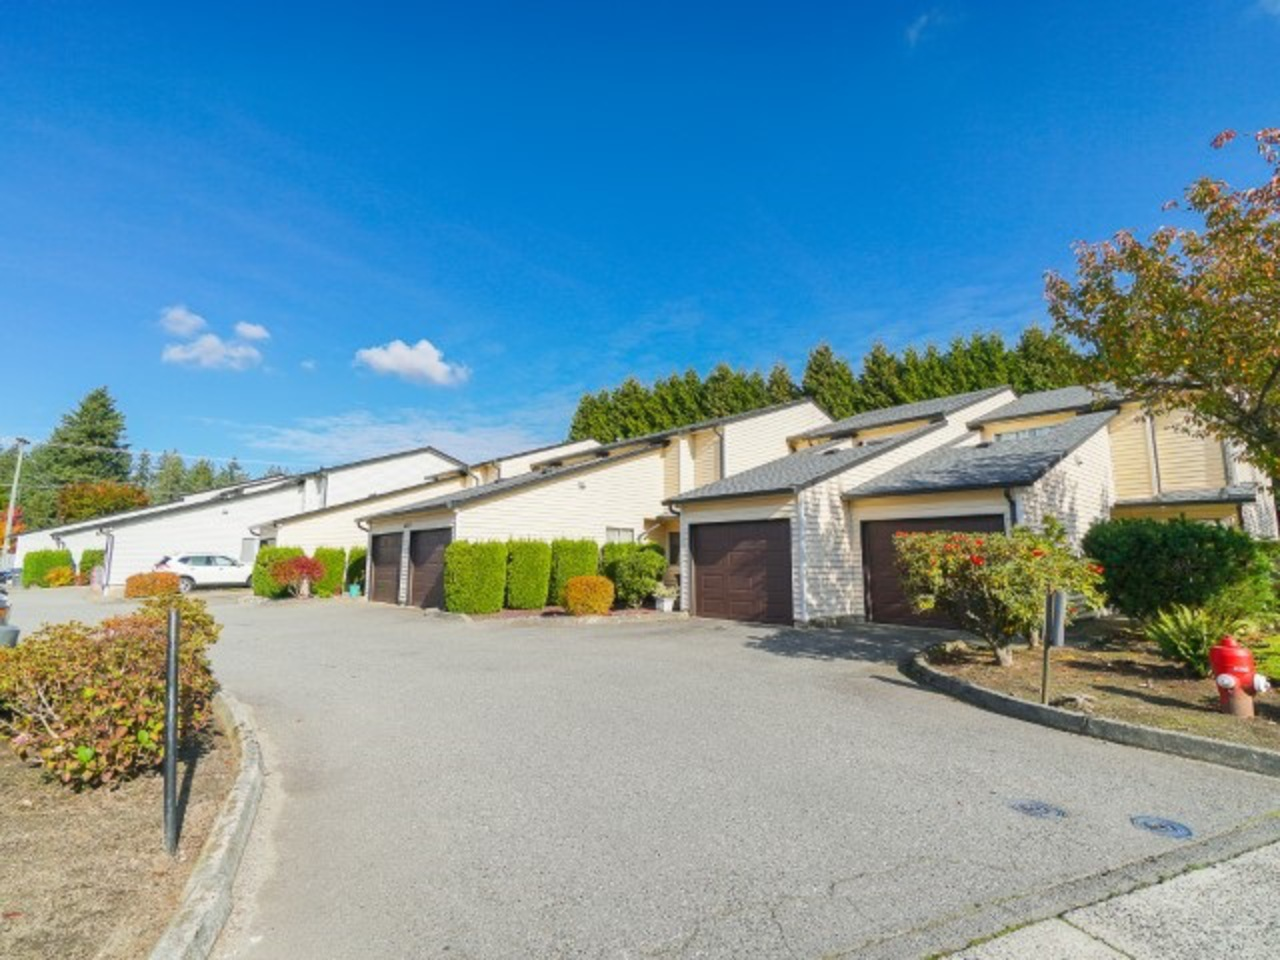 101 - 15541 87a Avenue, Fleetwood Tynehead, Surrey